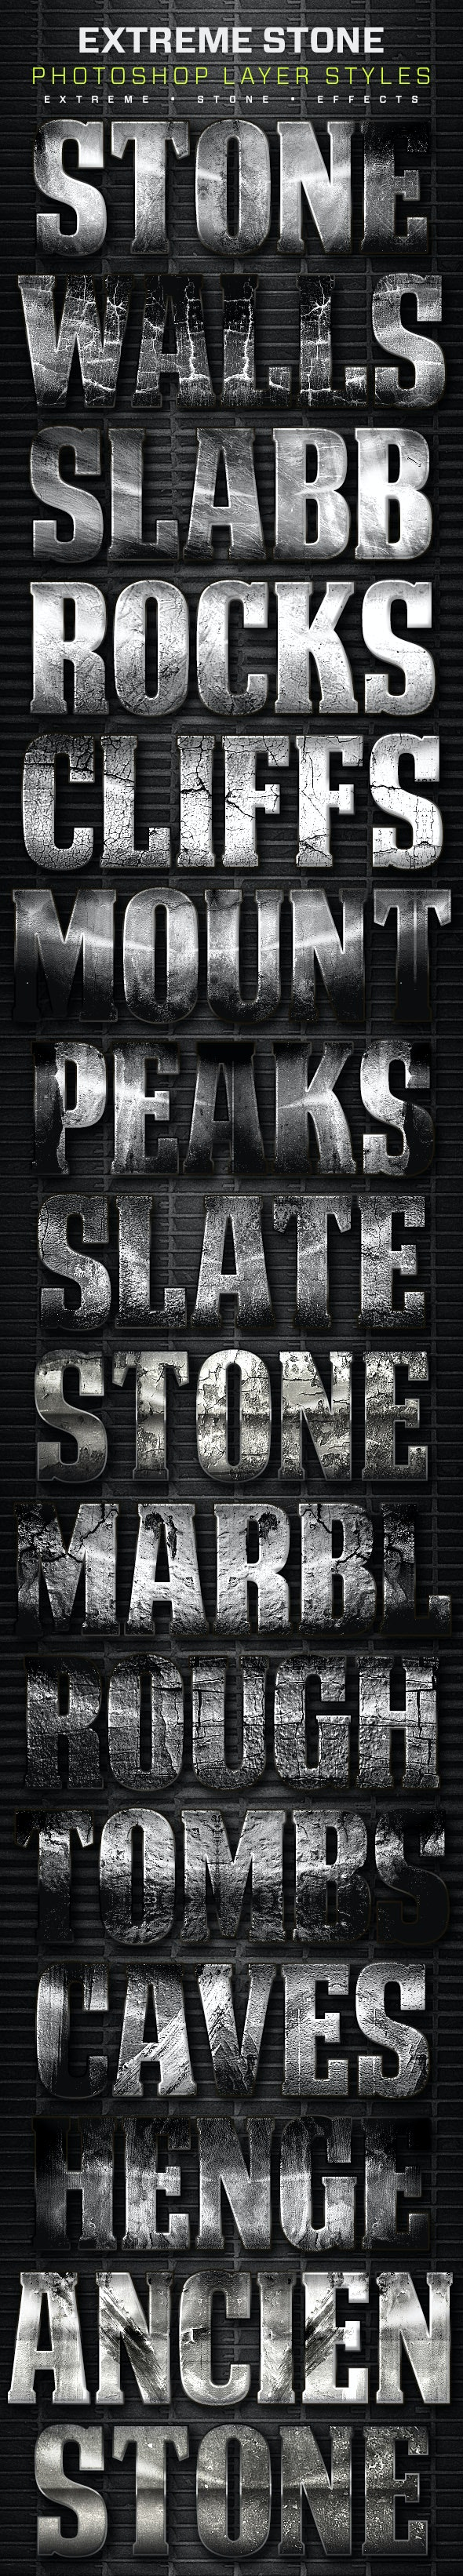 16 Extreme Stone Layer Styles Volume 5 - Text Effects Styles